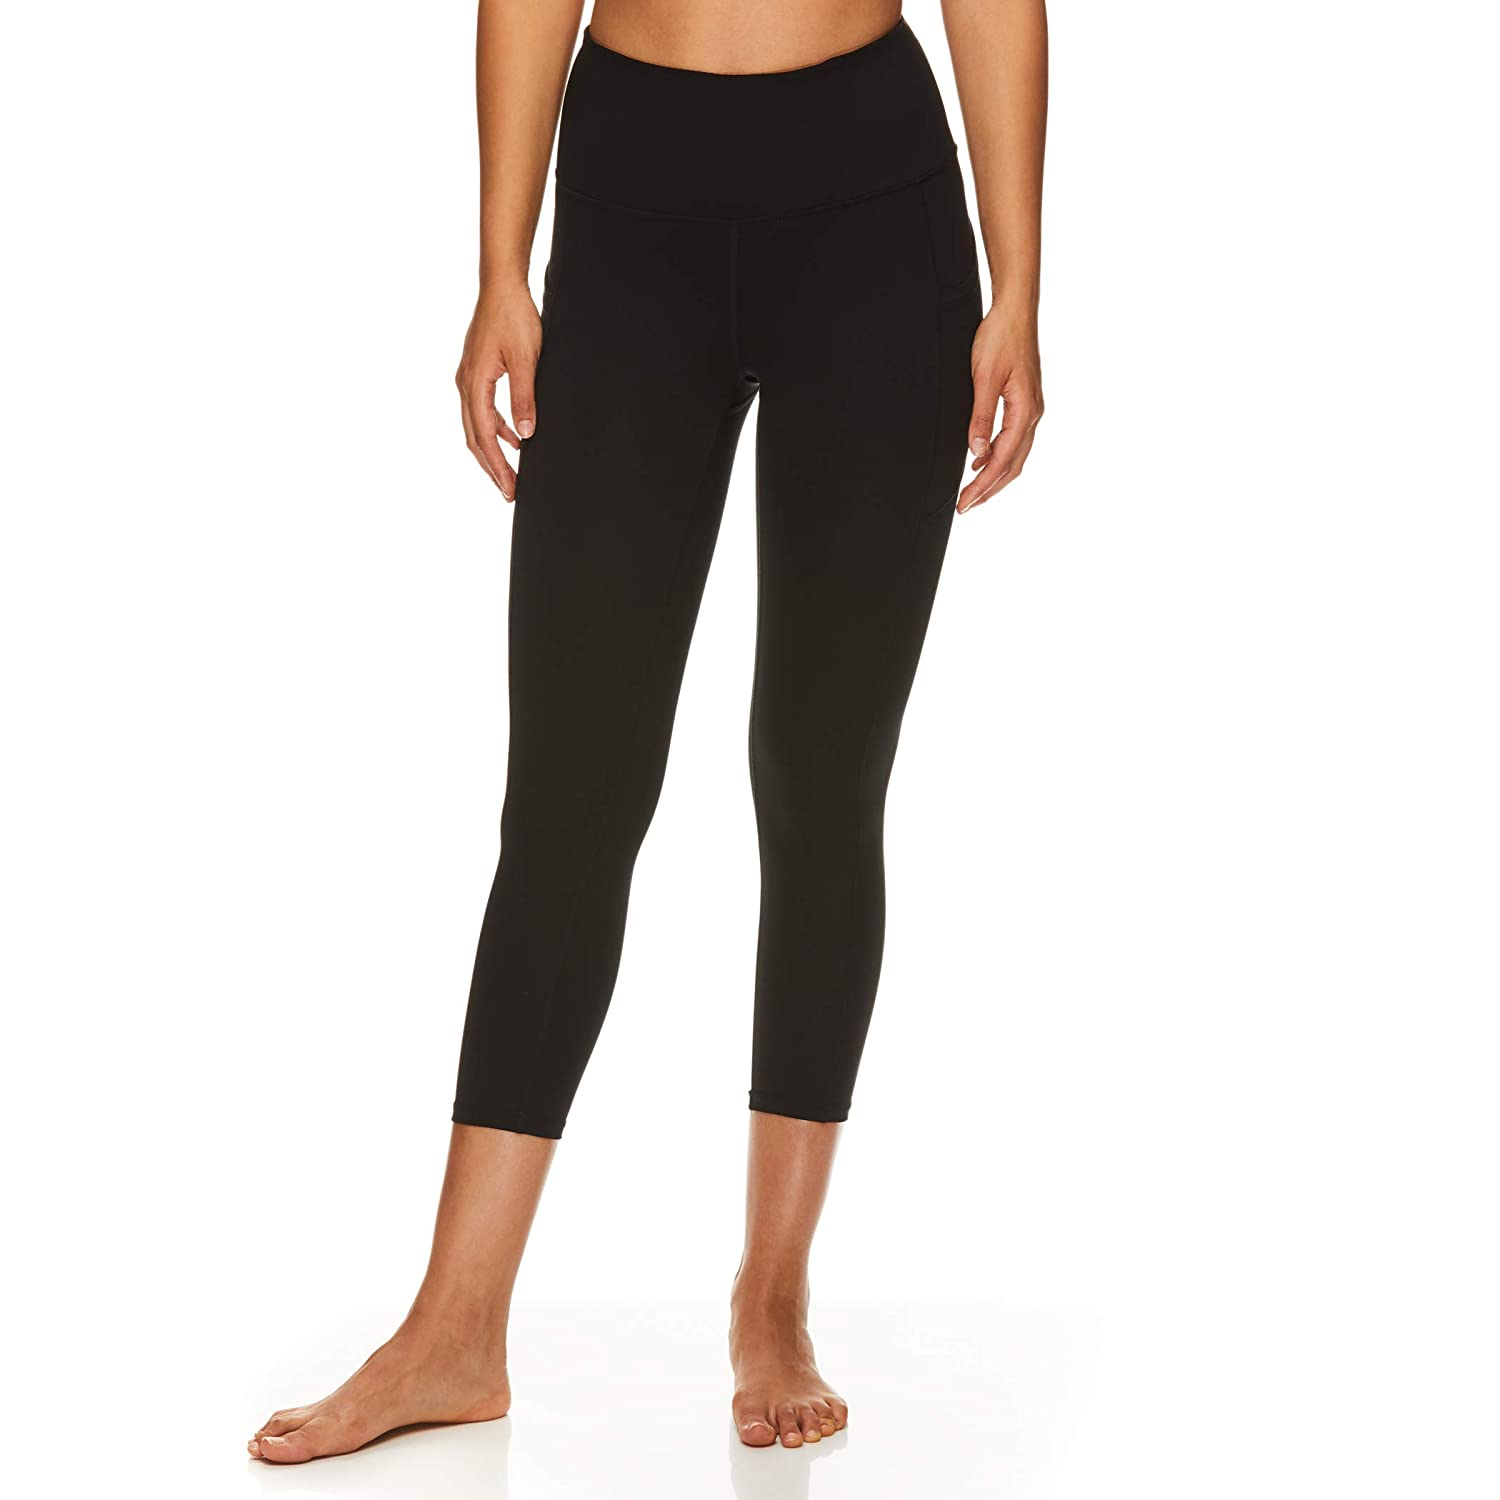 27090f2c103571 Amazon.com: Gaiam Women's High Rise Waist Capri Yoga Pants - Performance  Spandex Compression Leggings: Clothing